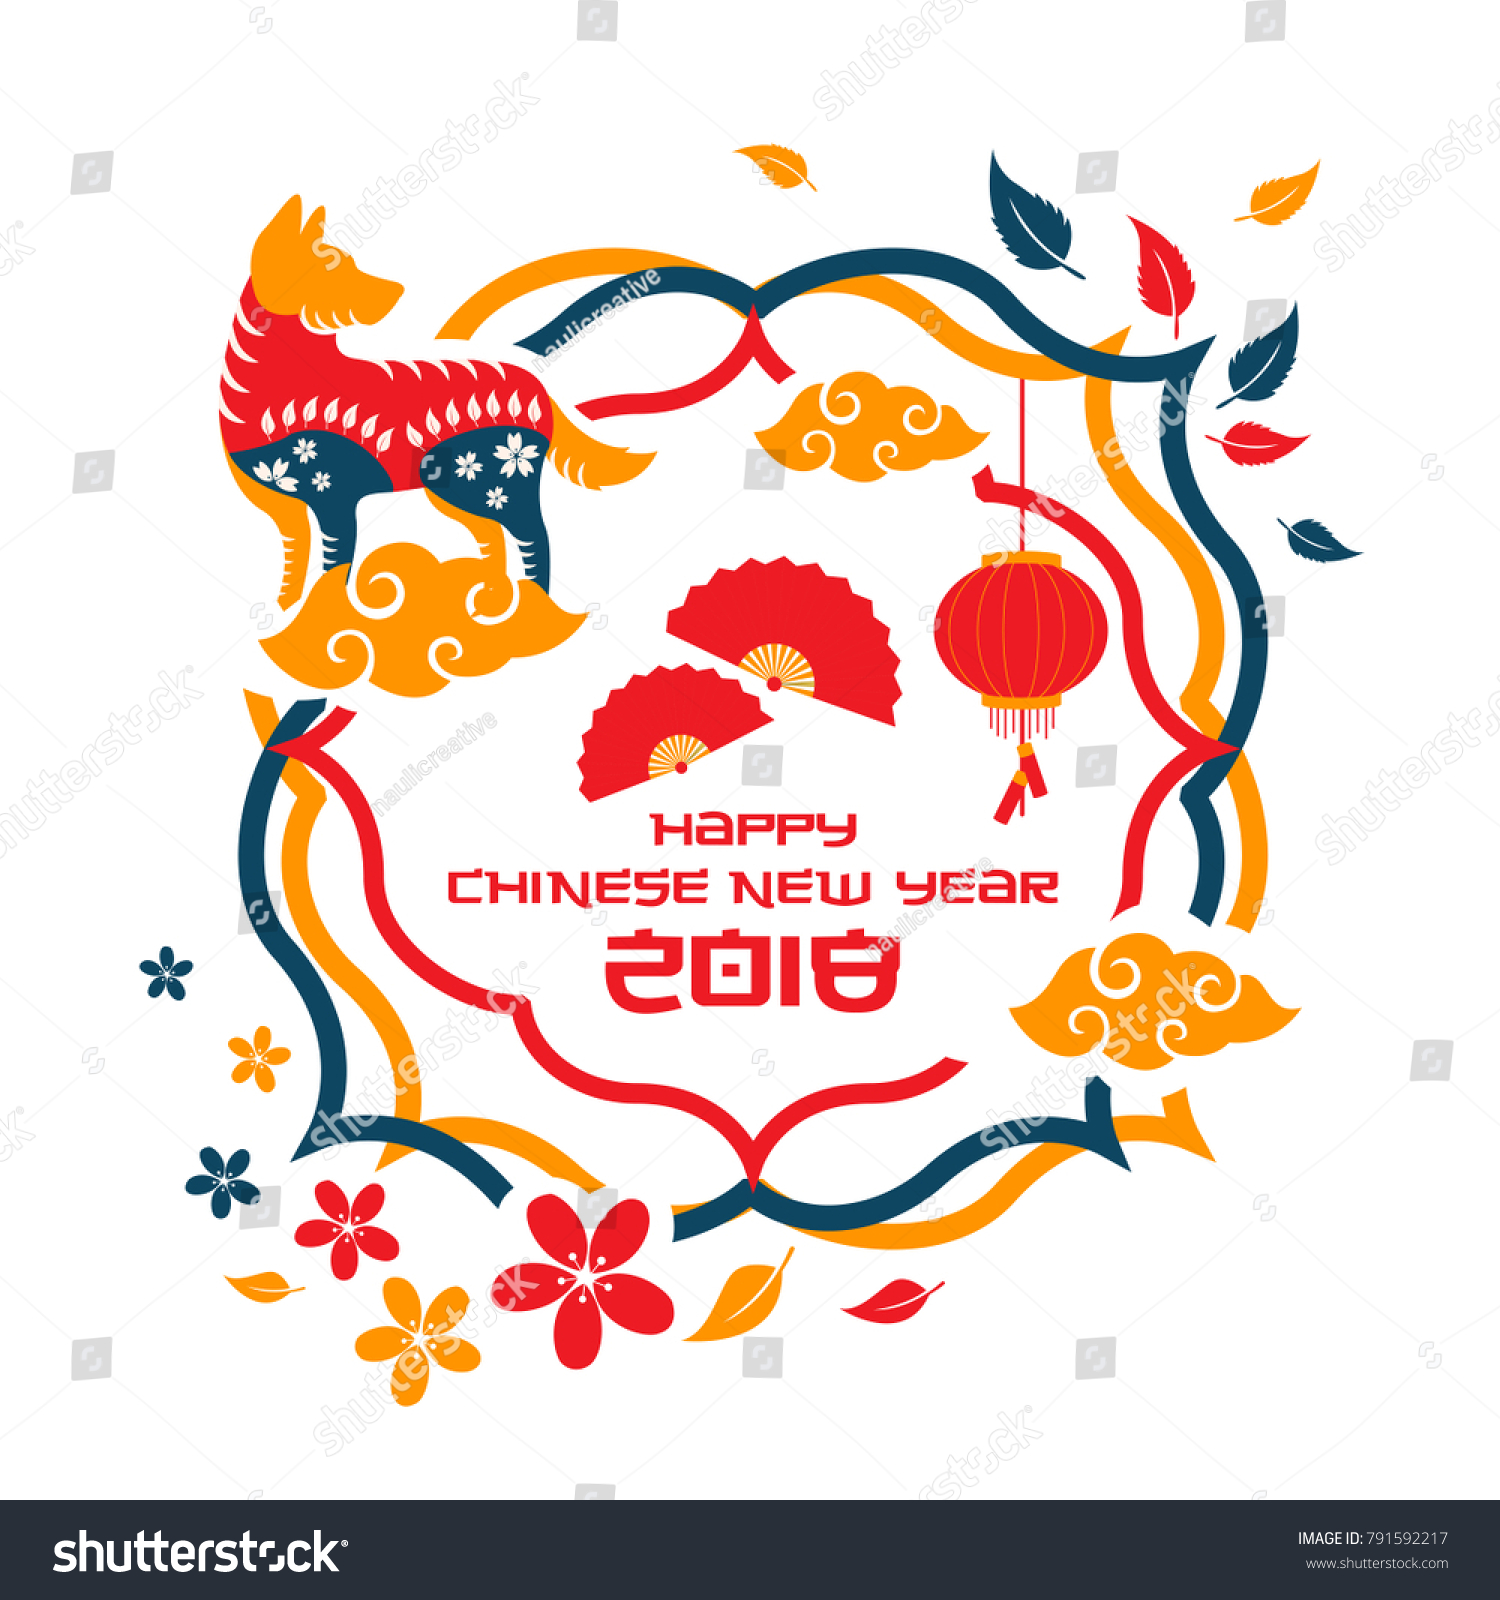 colorful chinese new year 2018 dog year banner and card design suitable for social media